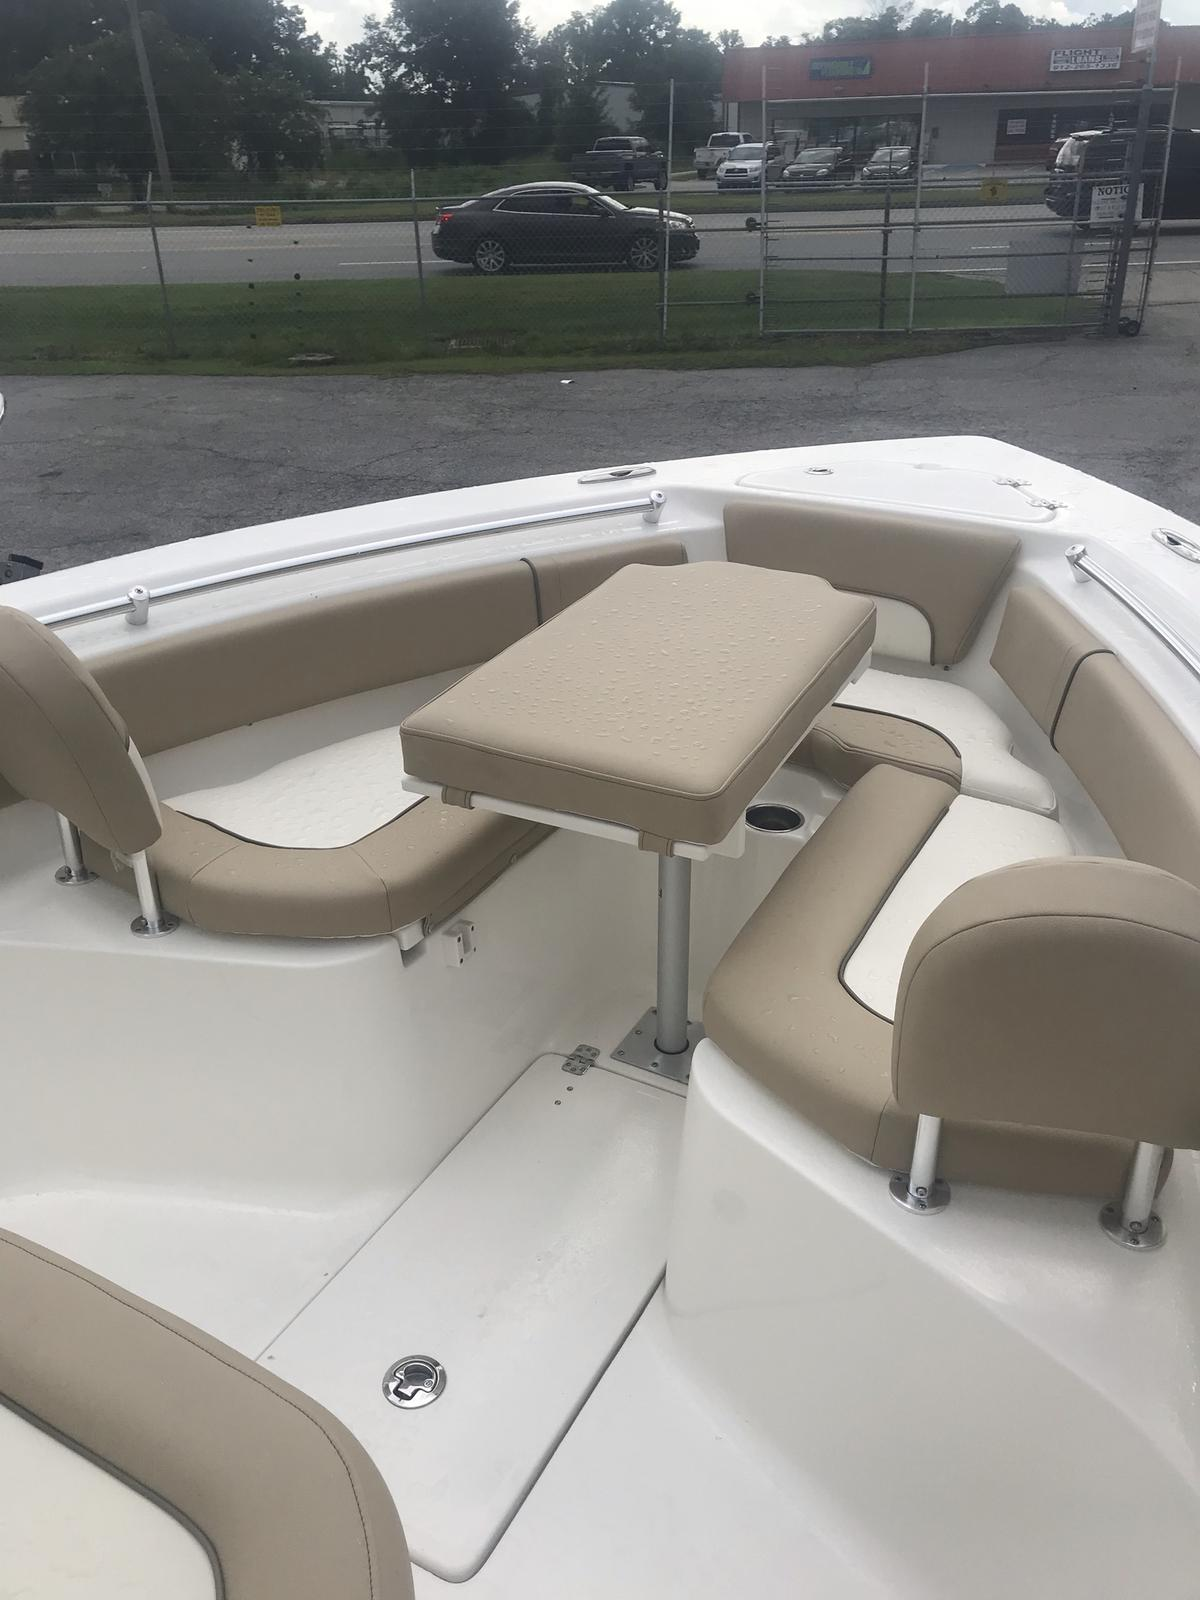 2020 Key West boat for sale, model of the boat is 239FS & Image # 5 of 7